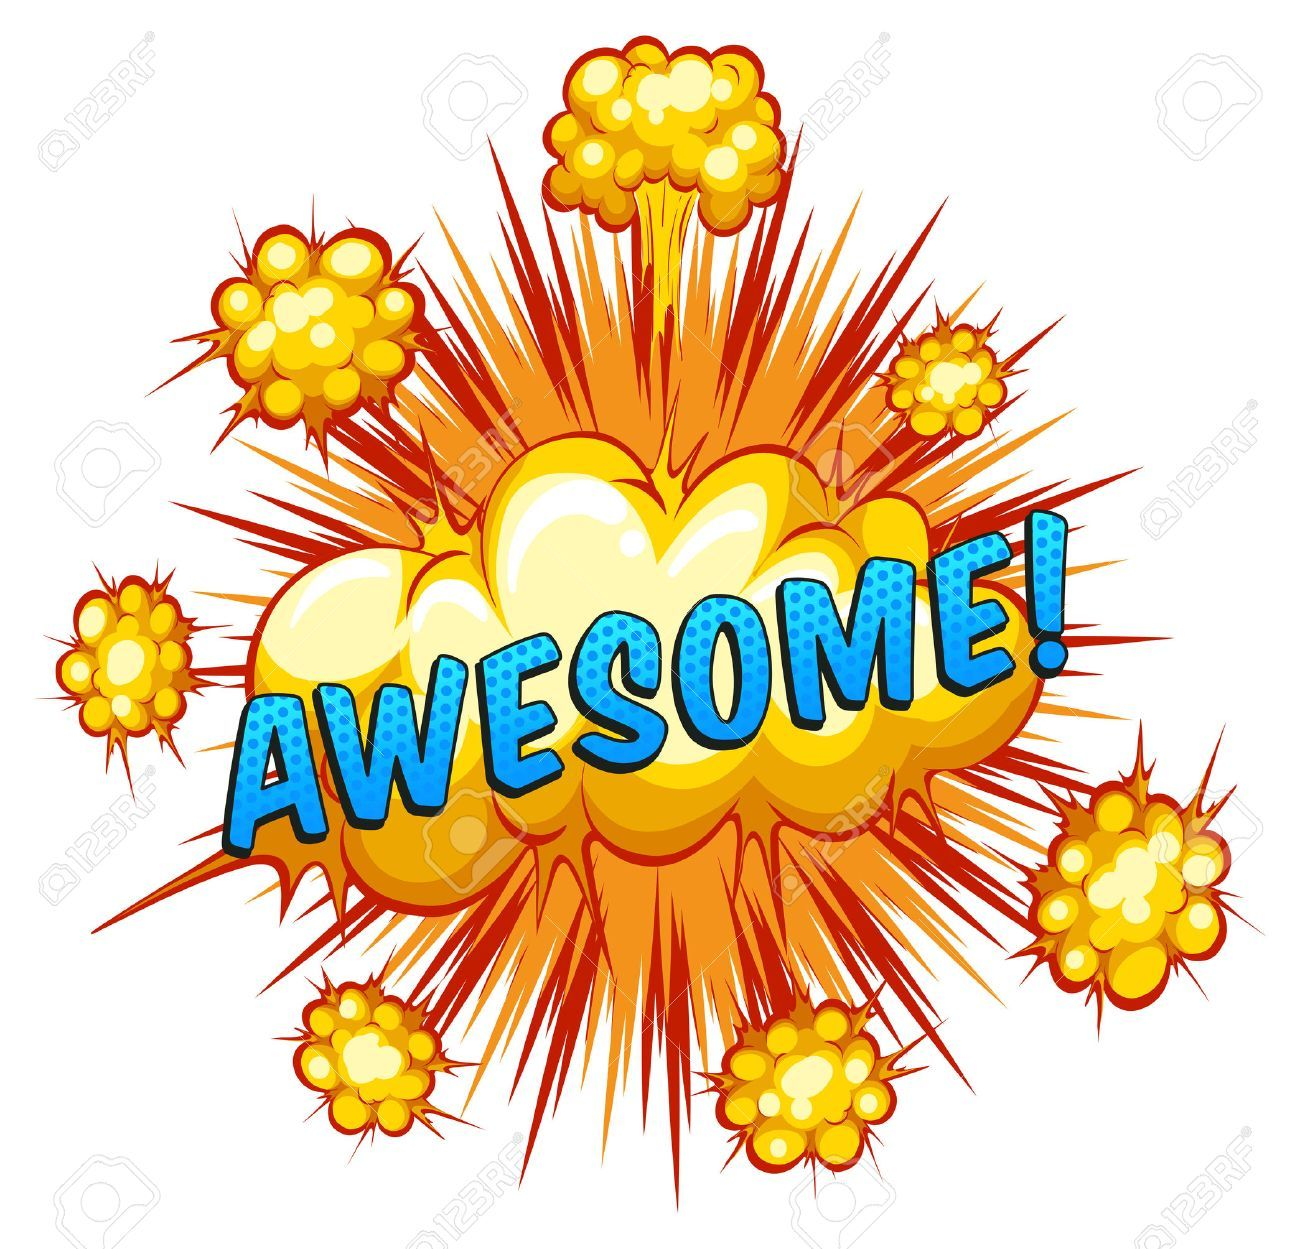 The word awesome clipart 8 » Clipart Portal.